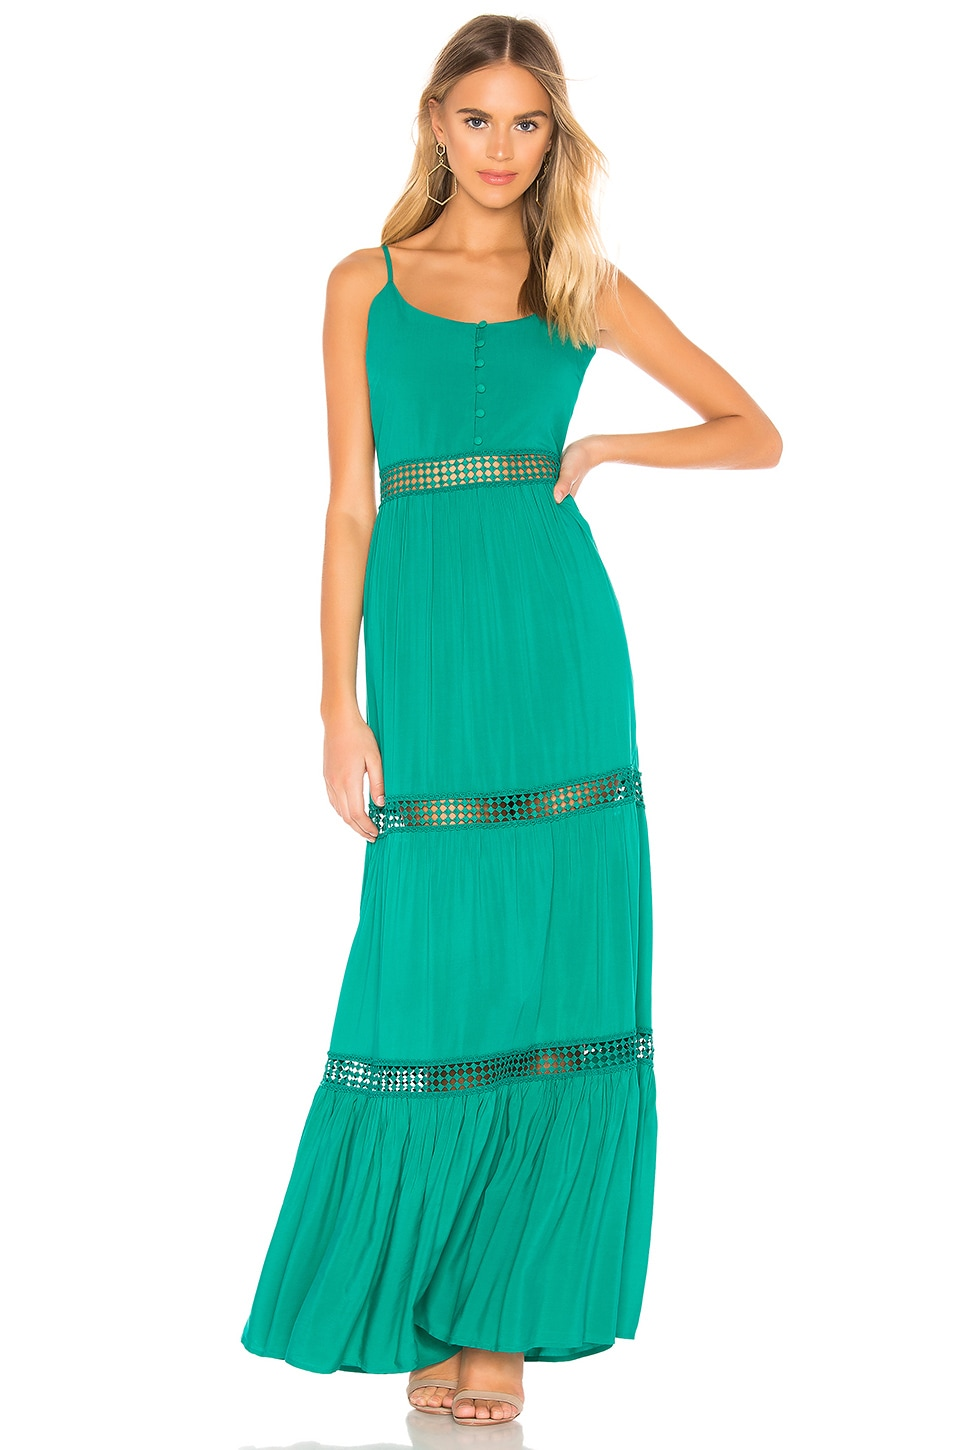 BB Dakota JACK by BB Dakota Sunshine Of My Life Dress in Pepper Green